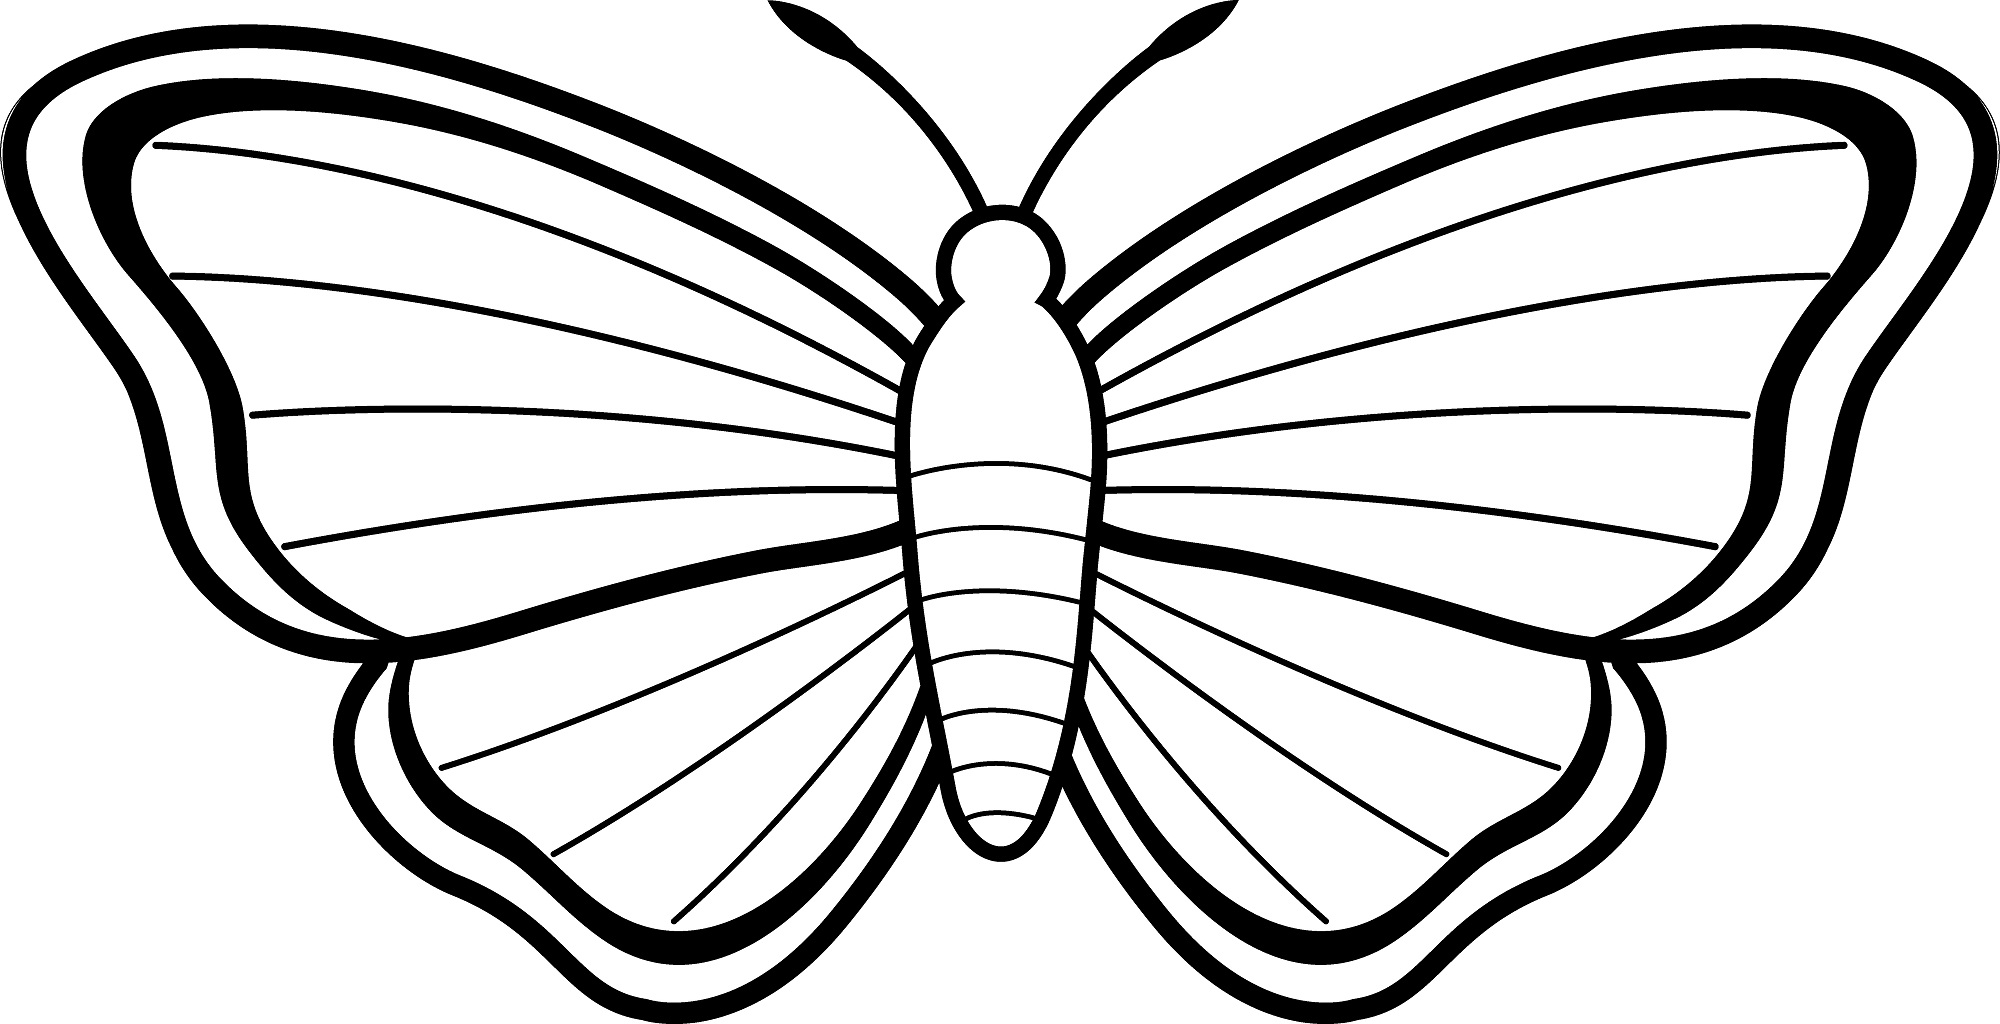 Free Butterfly Drawings, Download Free Clip Art, Free Clip